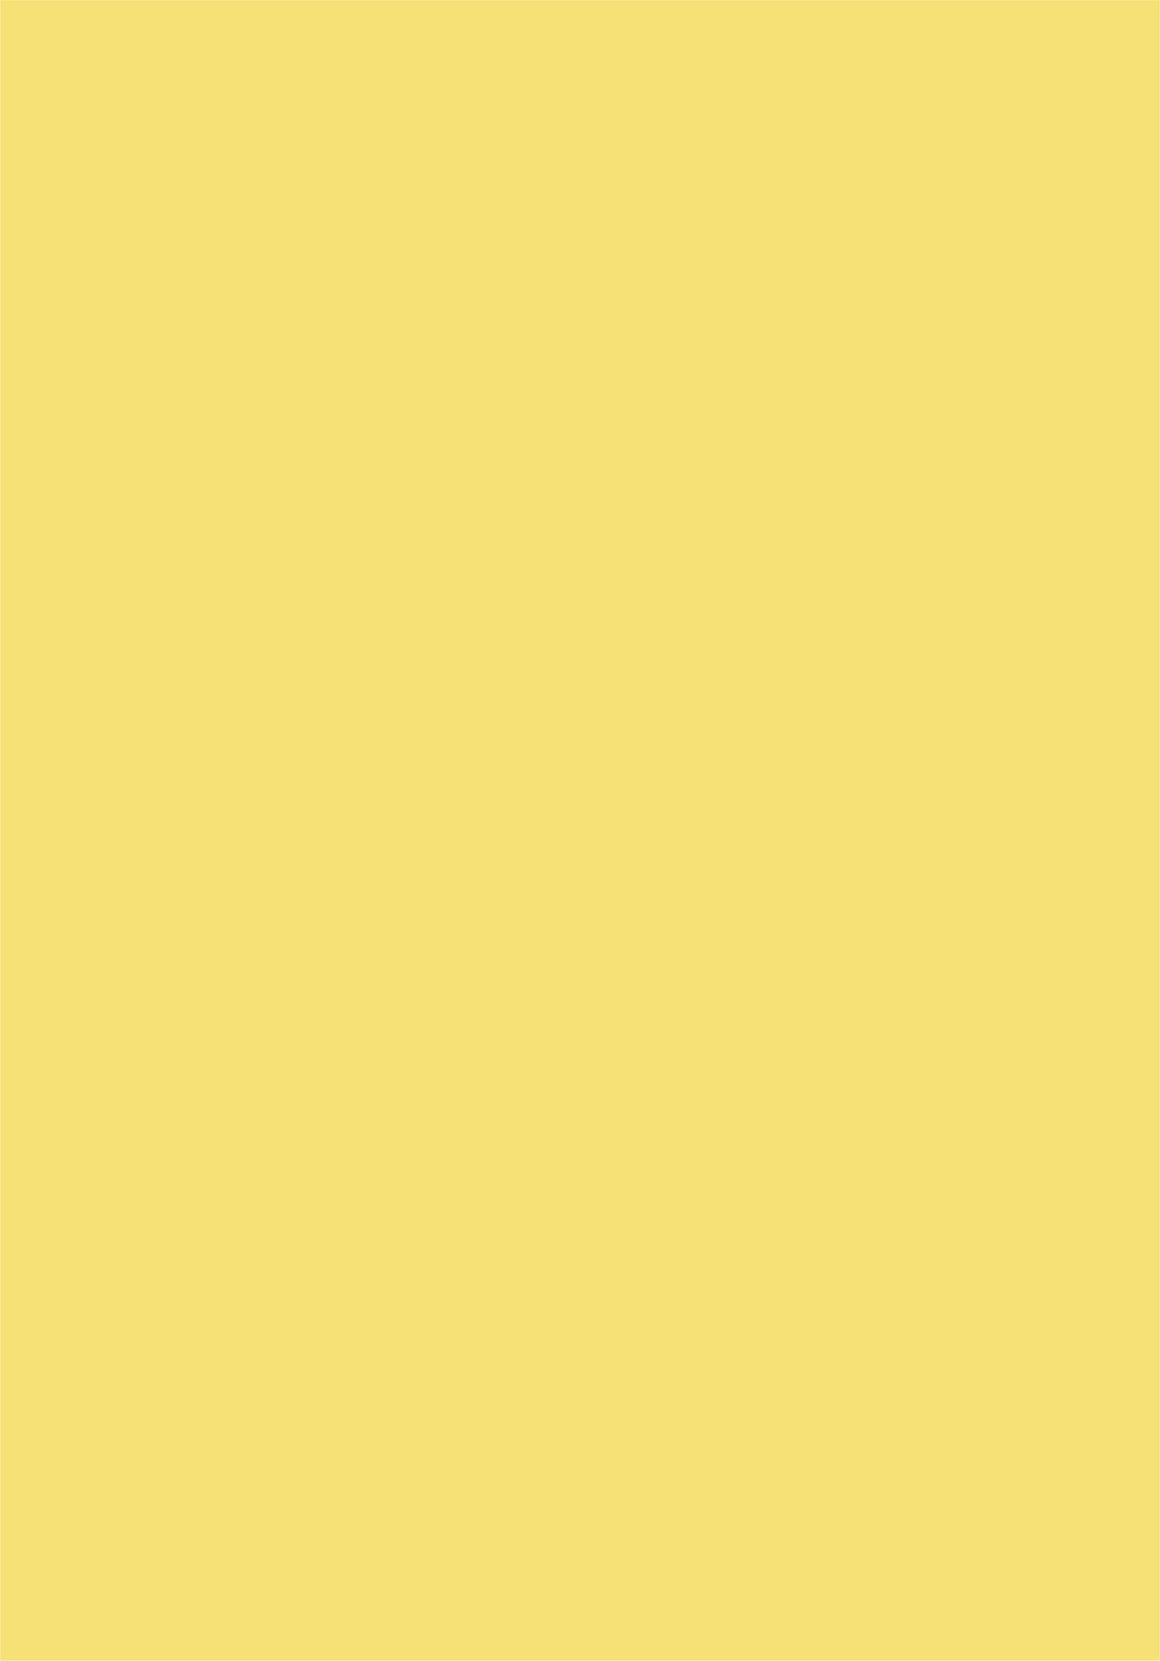 Kaskad canary yellow paper 120gsm